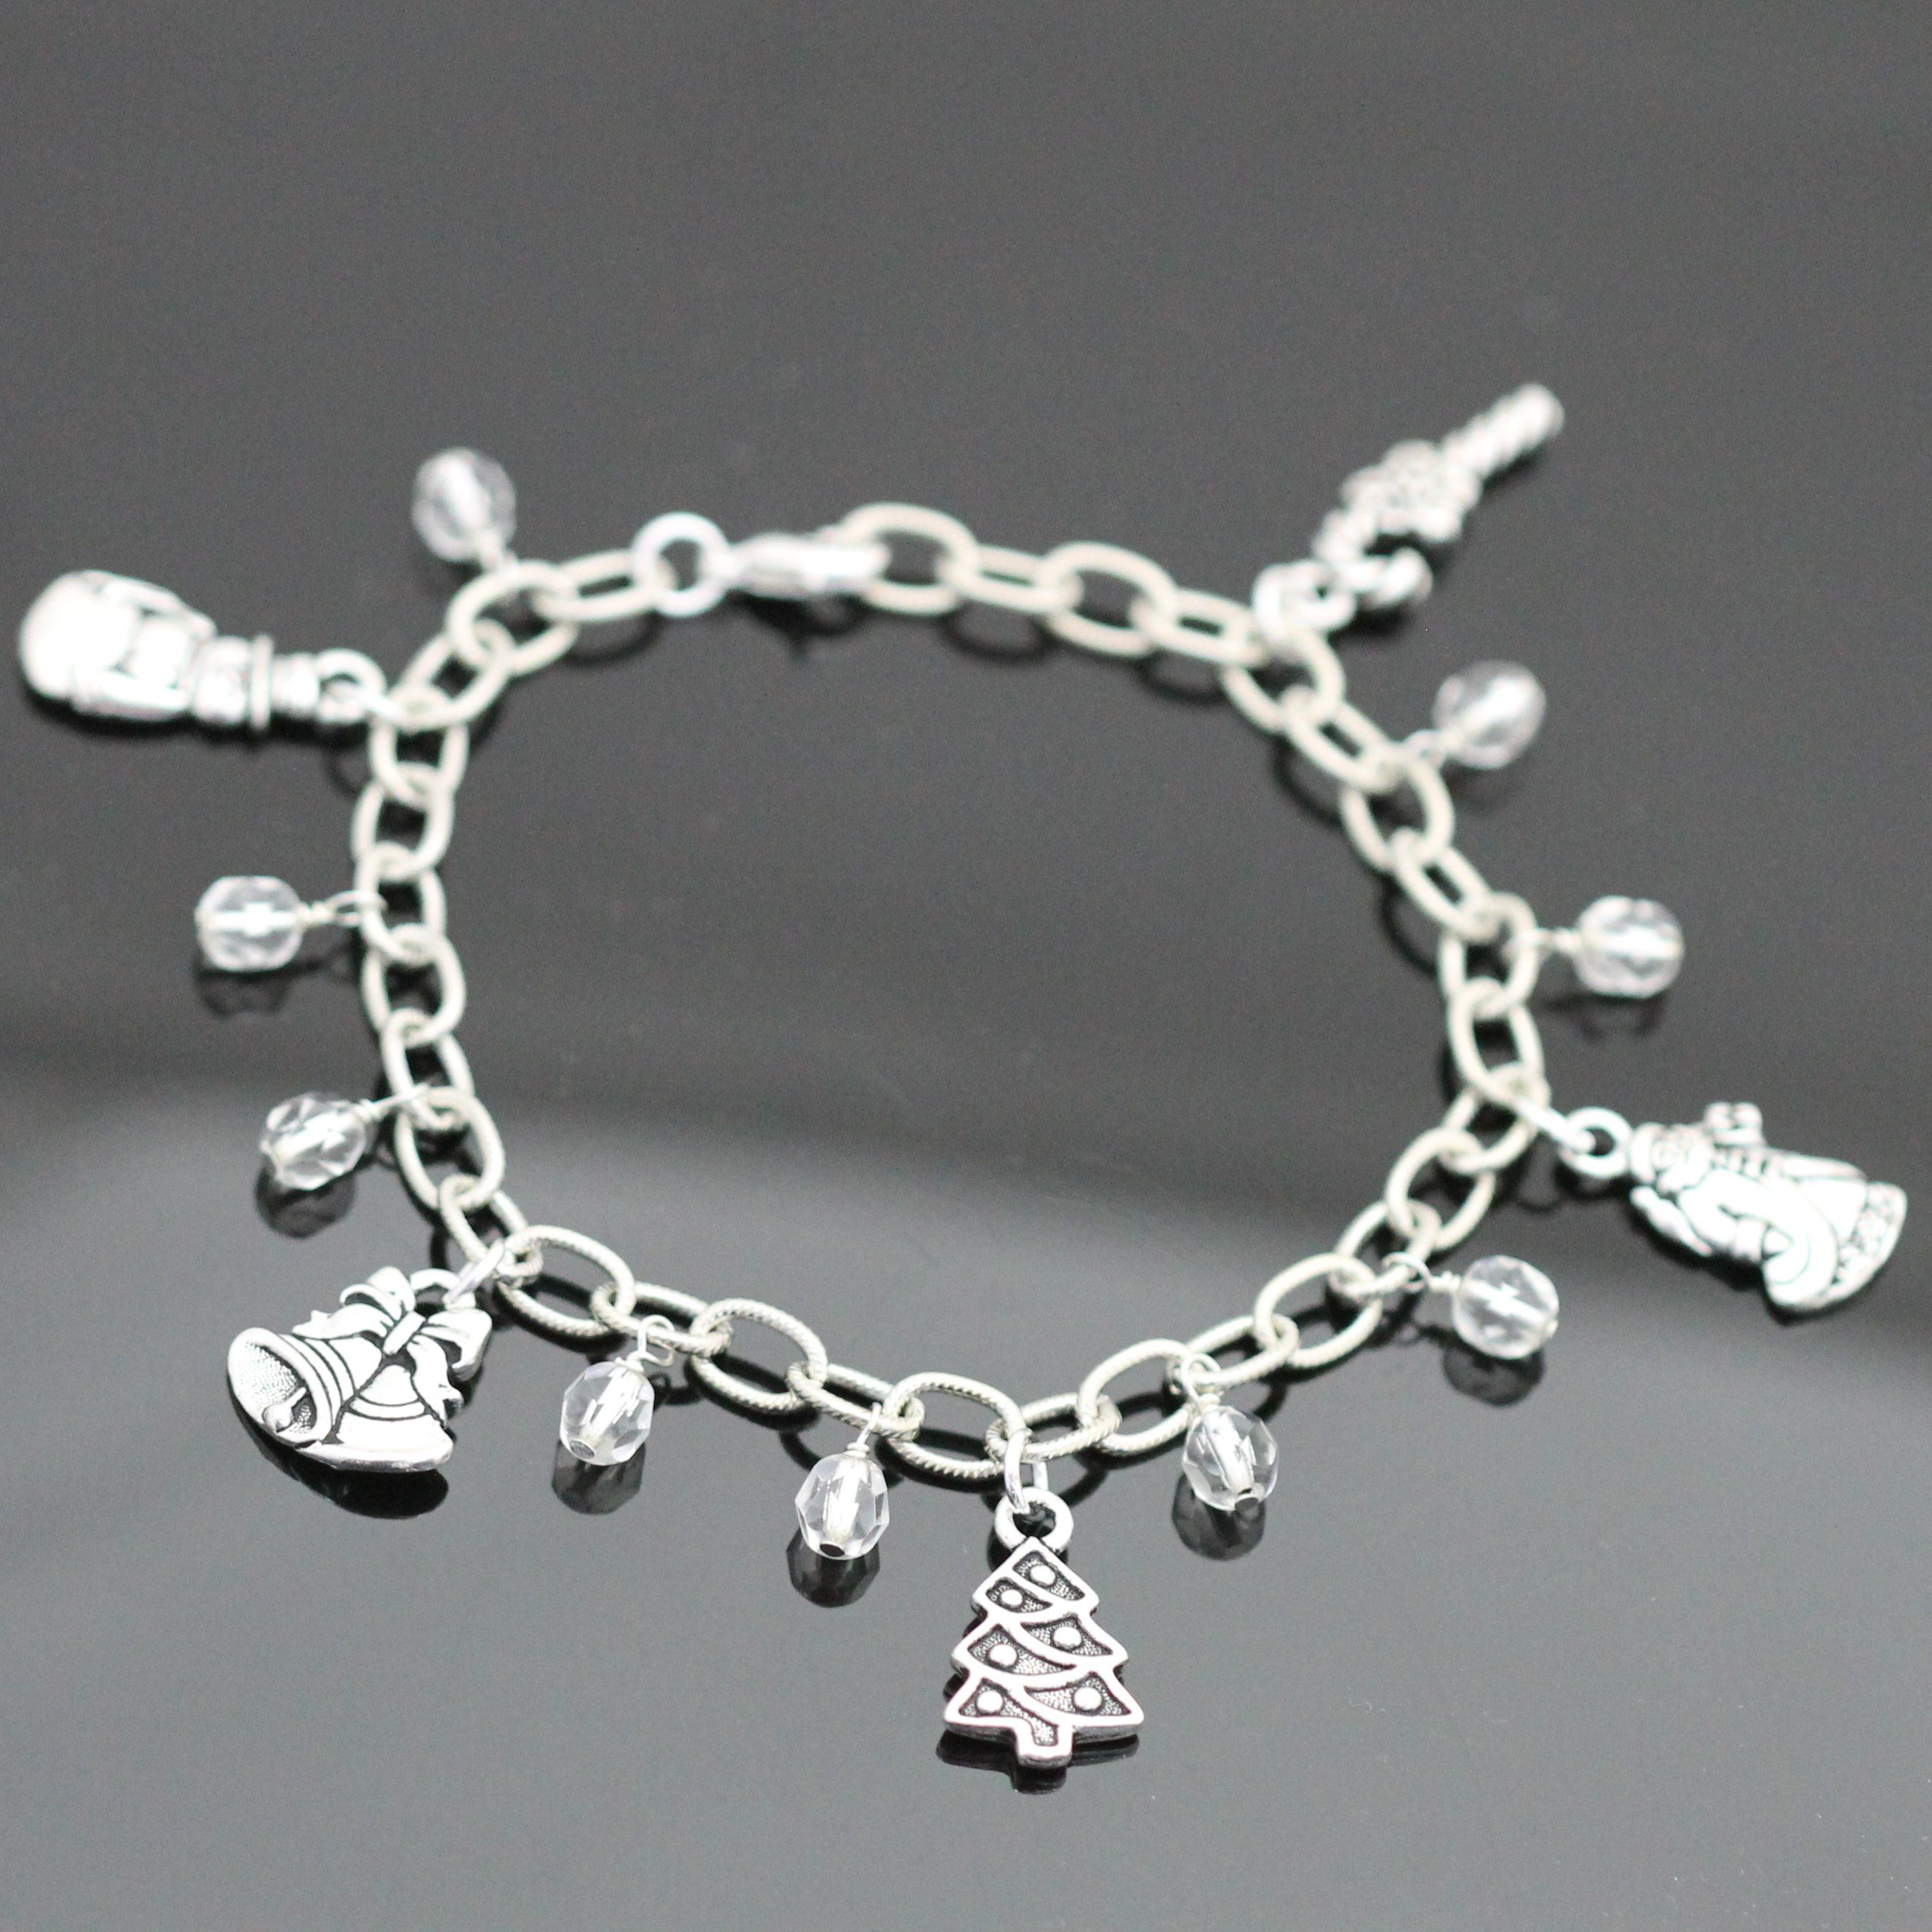 Learn to make our fun Christmas Sparkle Charm Bracelet with this FREE tutorial!  TierraCast charms and sparkling fire polish beads look great on this silver plated beauty.  Skills: wire wrapping and jump rings.  From Bead World Inc